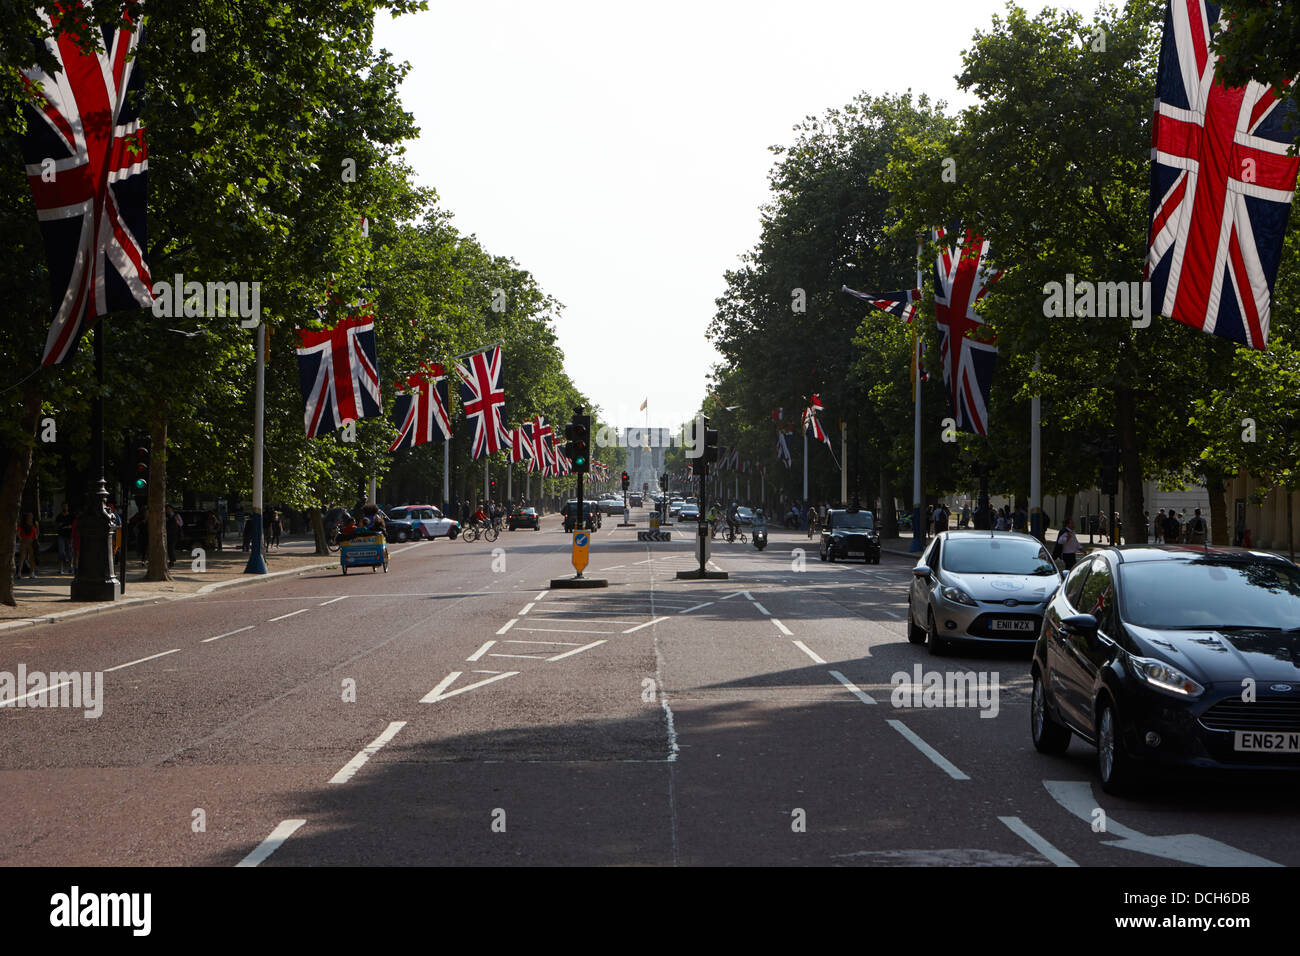 the mall lined with union flags London England UK - Stock Image